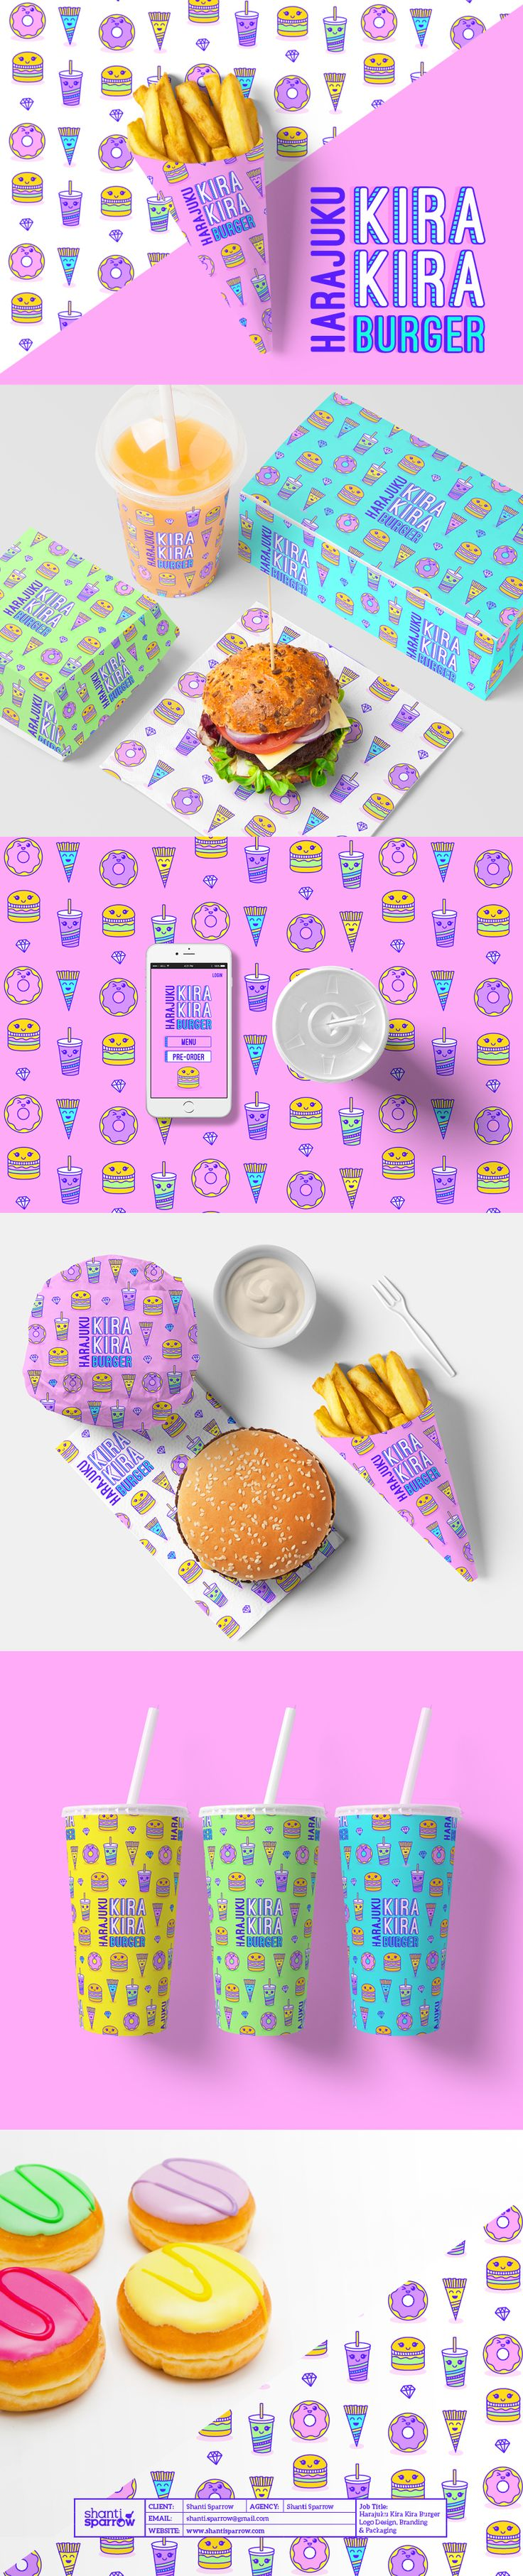 Consultez ce projet @Behance : \u201cHarajuku Kira Kira Burger – Logo, Branding & Packaging\u201d https://www.behance.net/gallery/35028807/Harajuku-Kira-Kira-Burger-Logo-Branding-Packaging